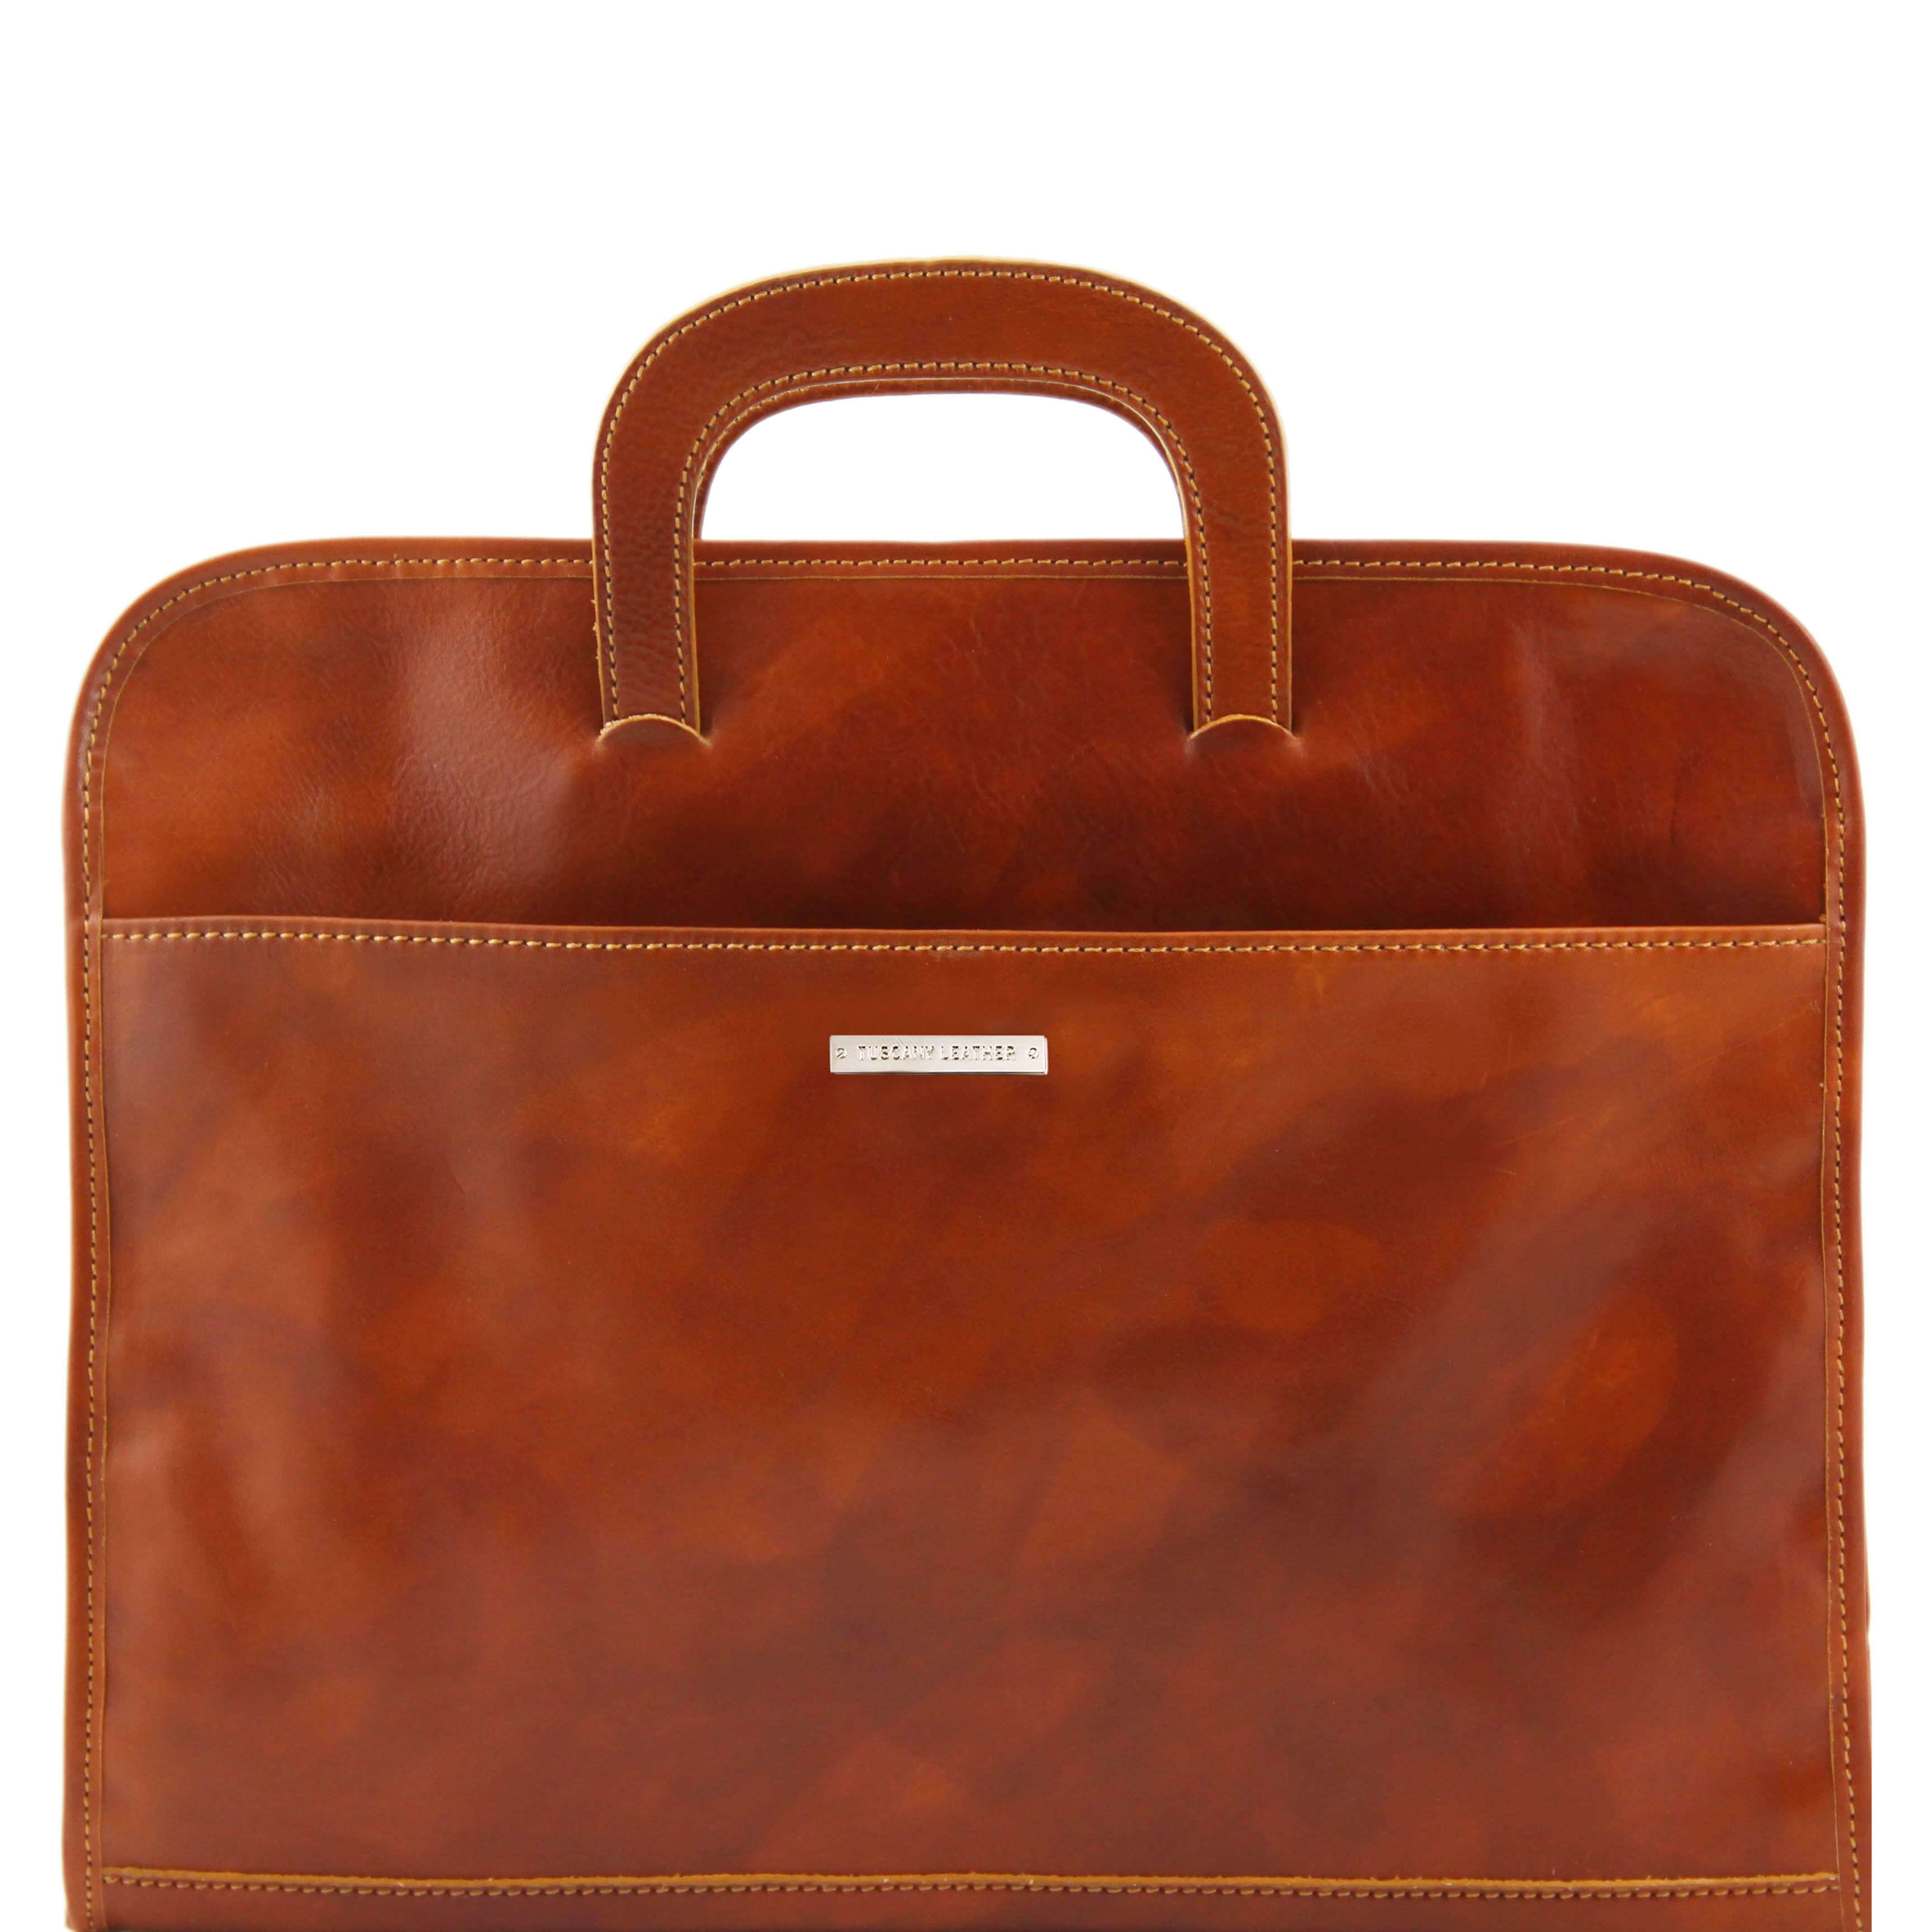 TL141022 Sorrento Leather Lightweight Document-Folio- Briefcase-